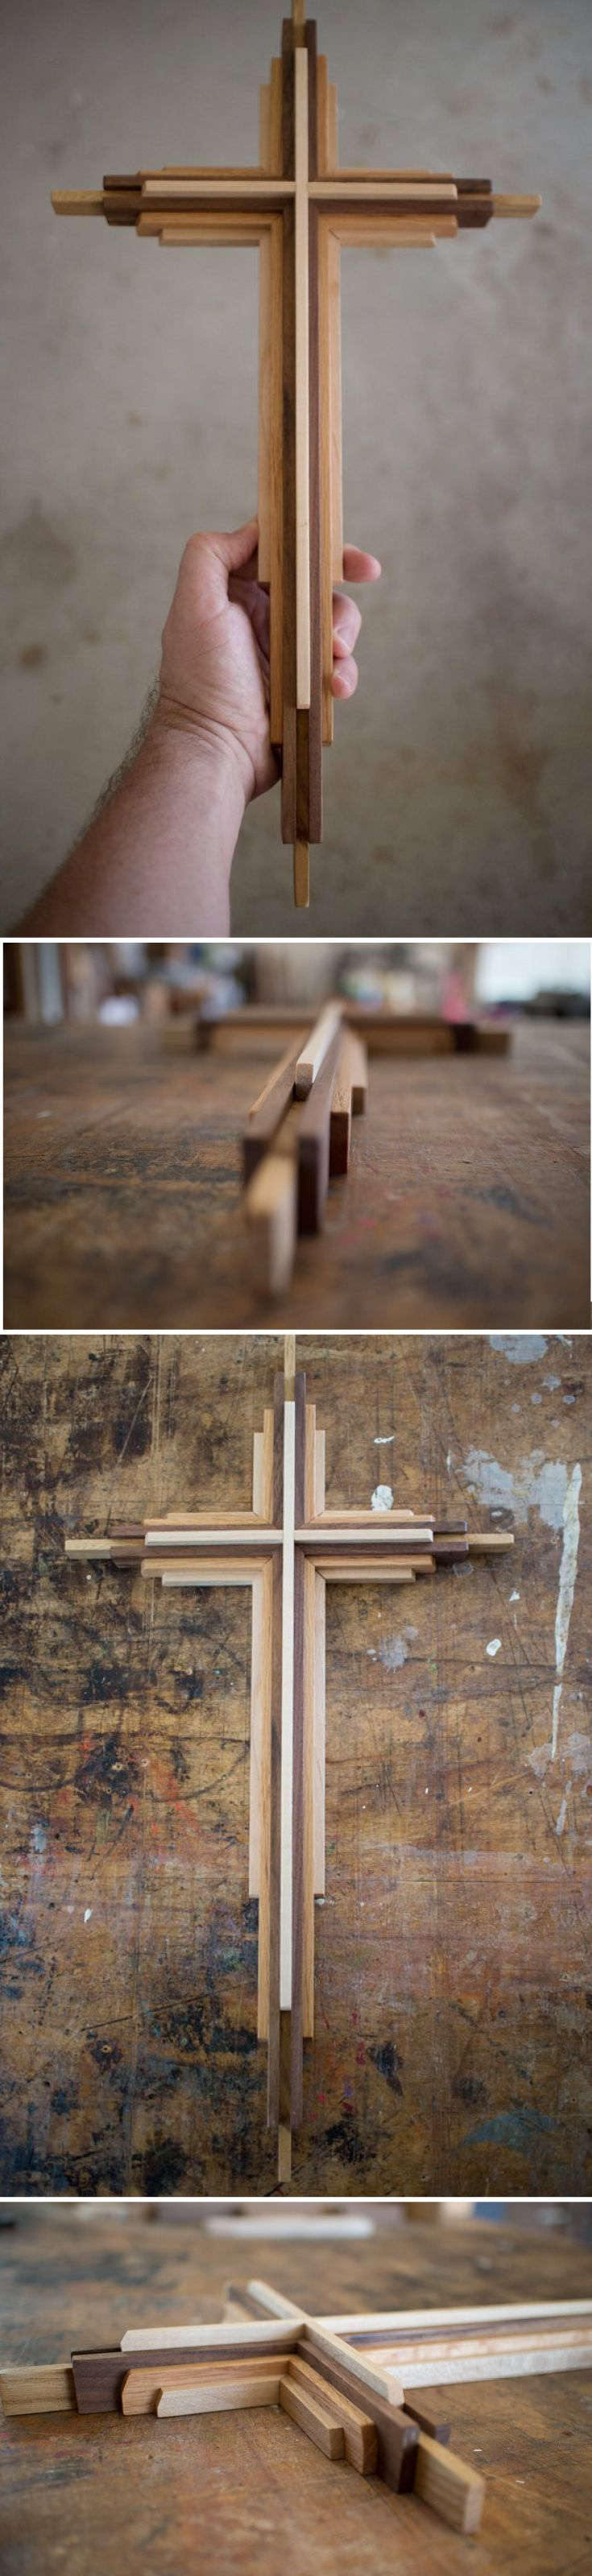 Cross template simple cross image craft ideas pinterest crosses - Diy 20 Inch Tall Wooden Cross Plans This Cross Is Handmade From Three Contrasting Woods